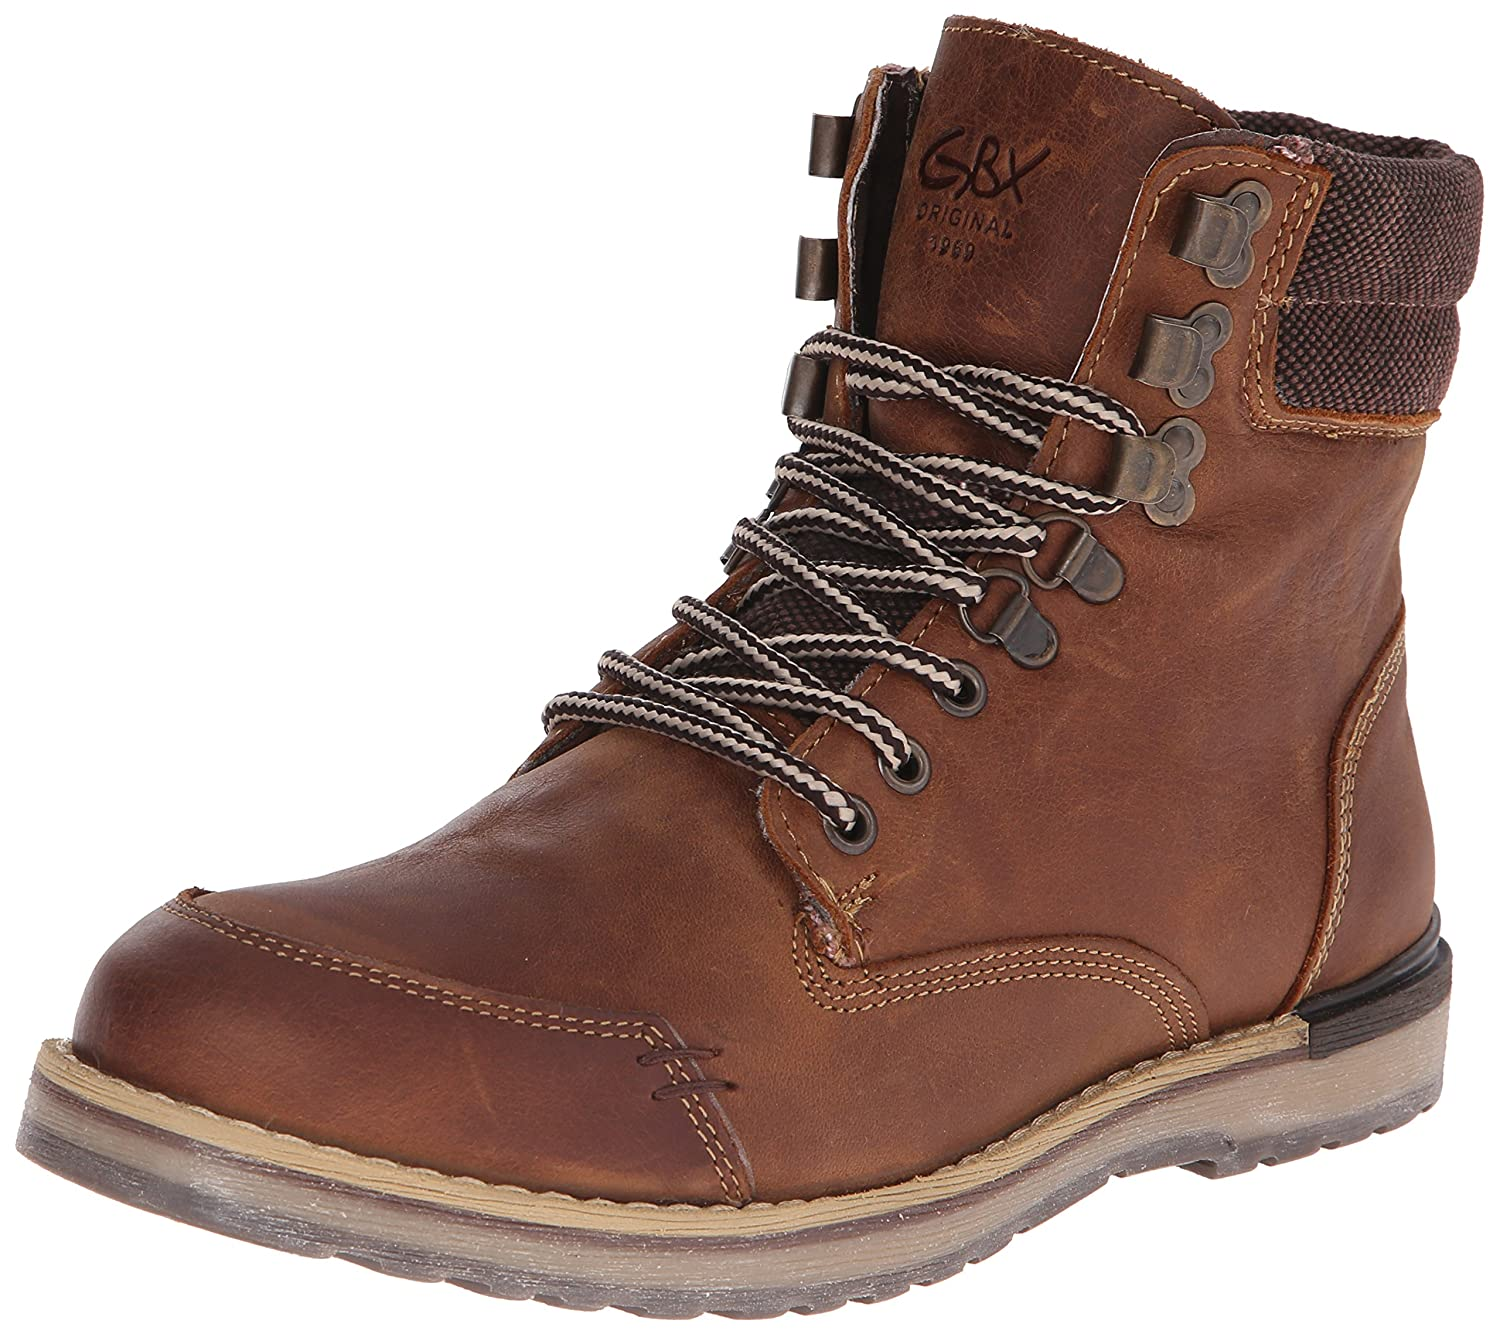 a785501bef6 GBX Men's Draco Boot, Dark Brown, 7 M US: Amazon.co.uk: Shoes & Bags